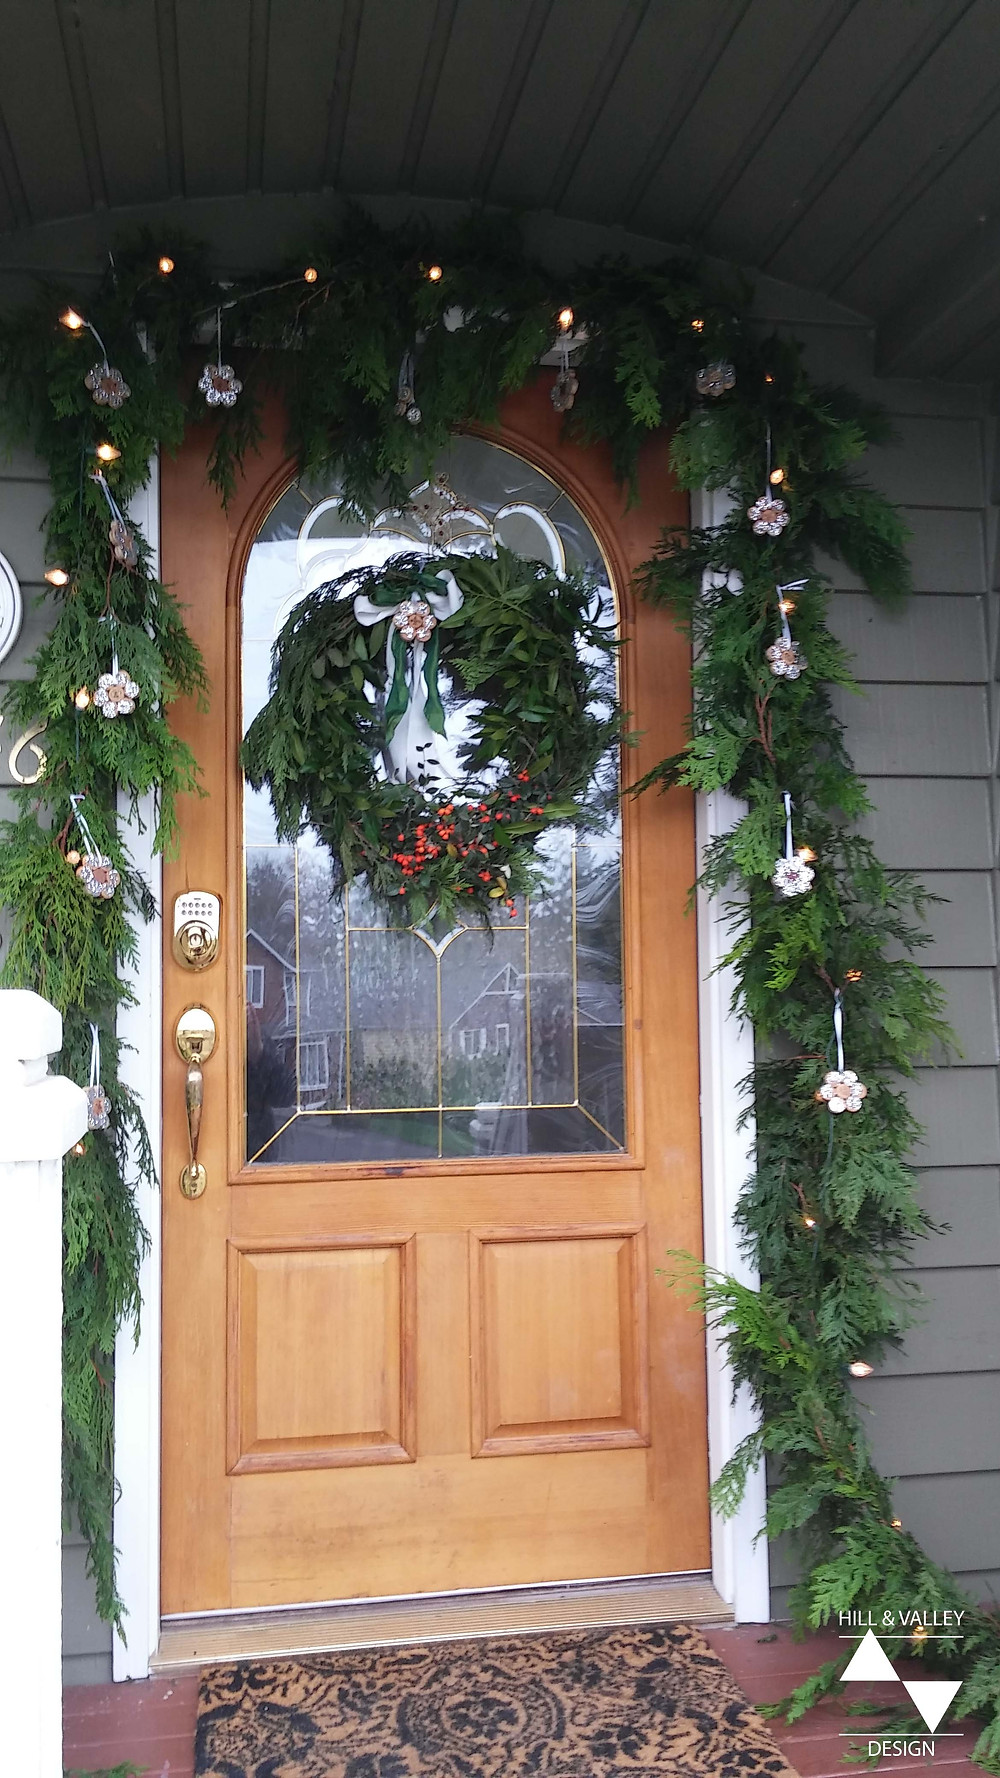 Porch/entry door decorated for Christmas with wreath, lights, ornaments, and garland.